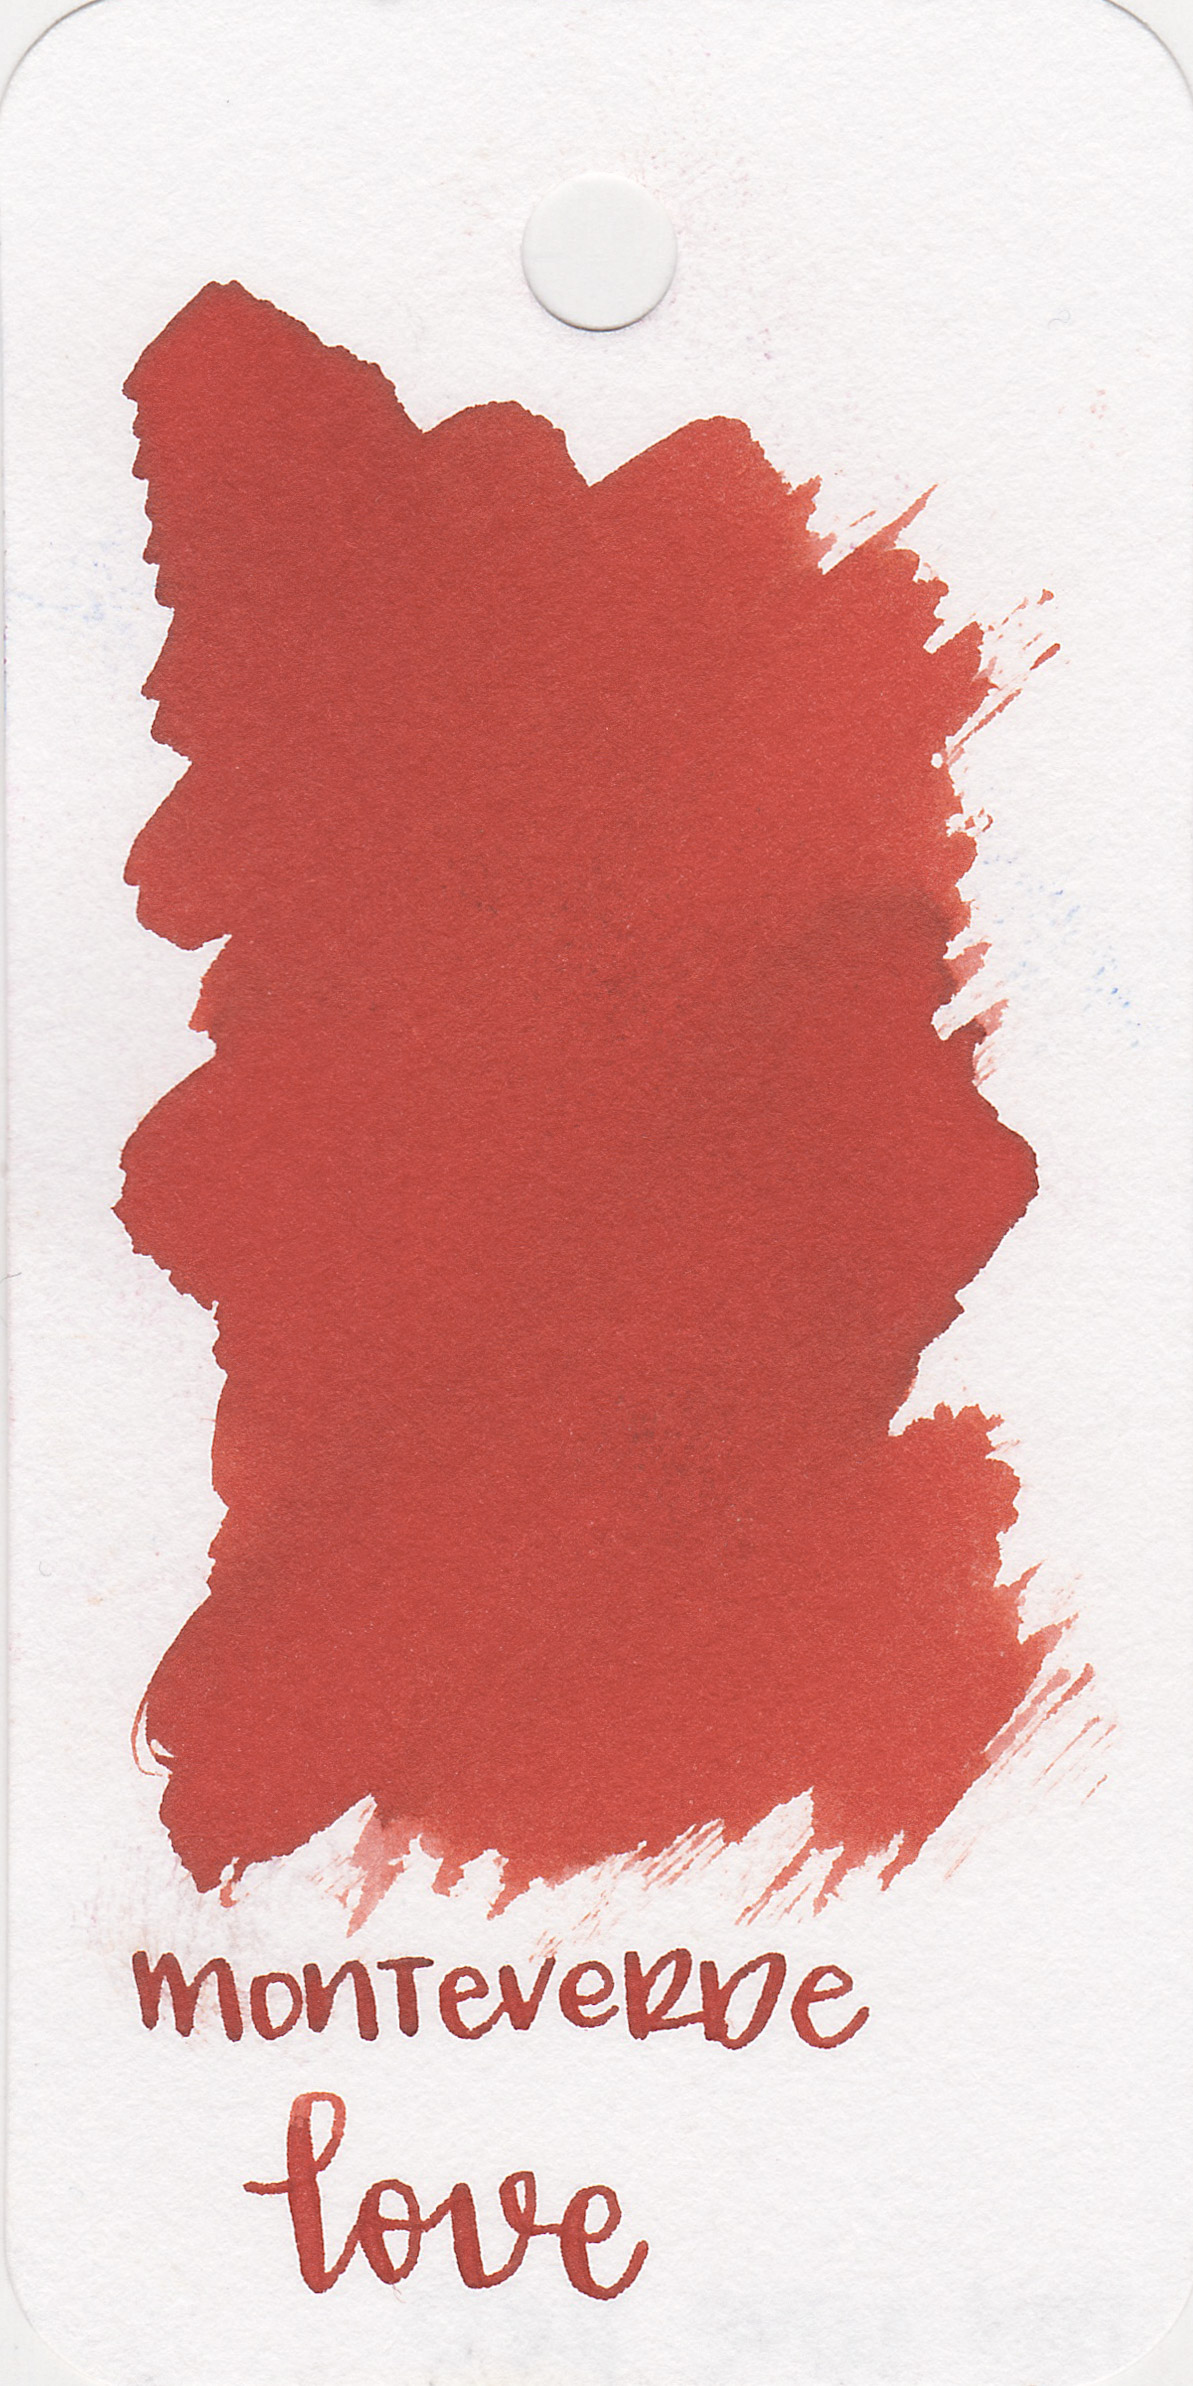 The color: - Love is a dark red with an orange undertone.